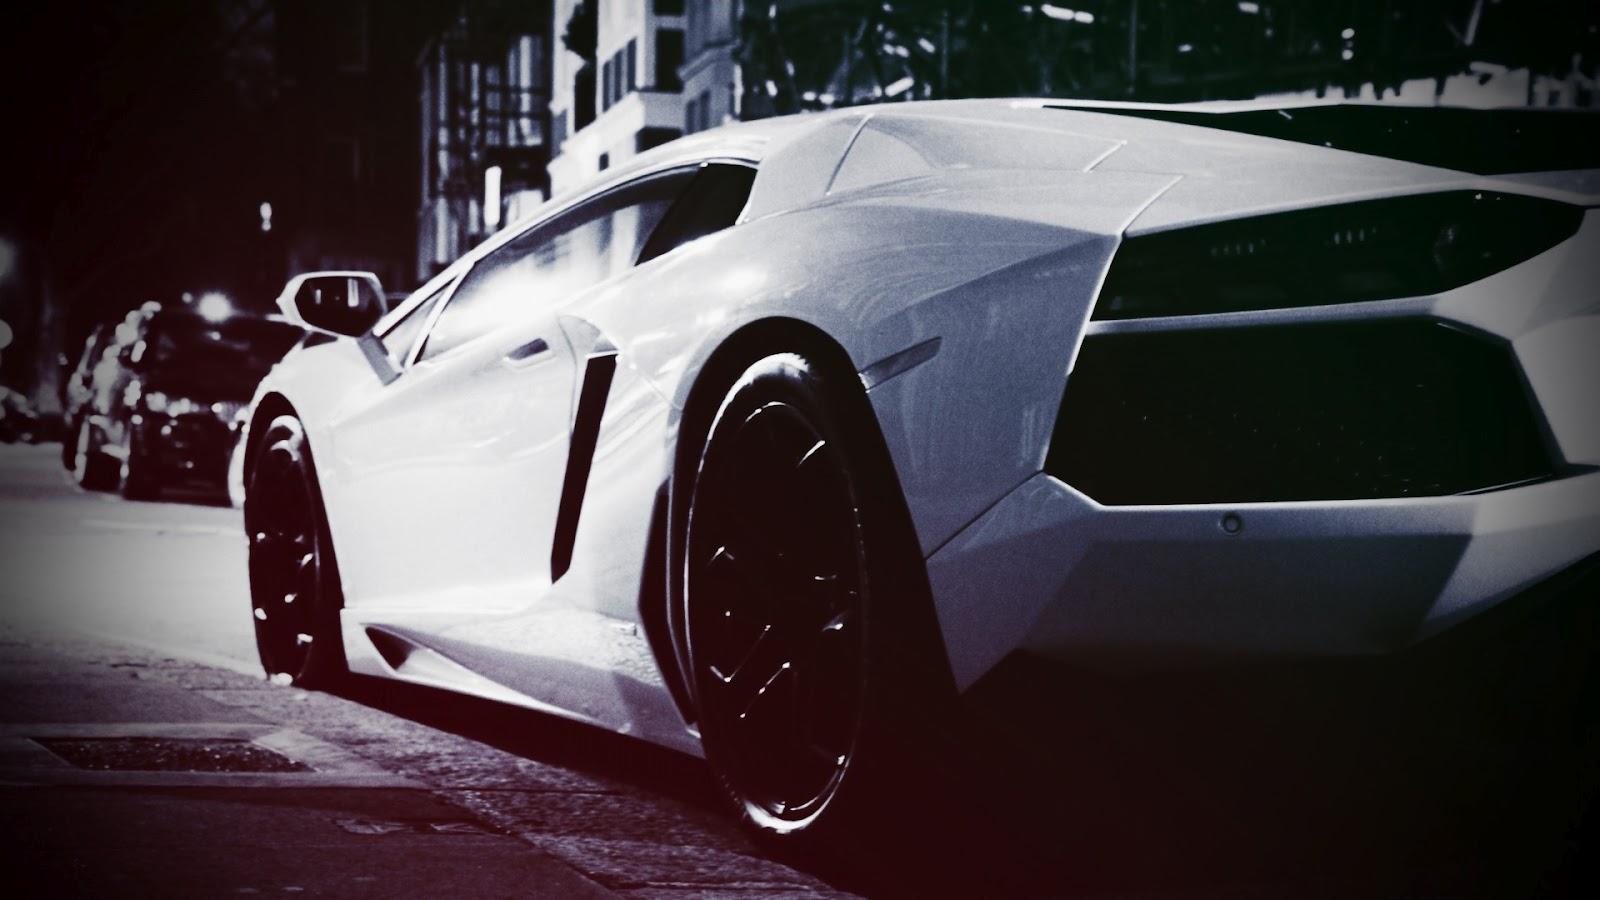 Lamborghini Aventador Car Old Looking Photo HD Wallpaper | HD Car ...